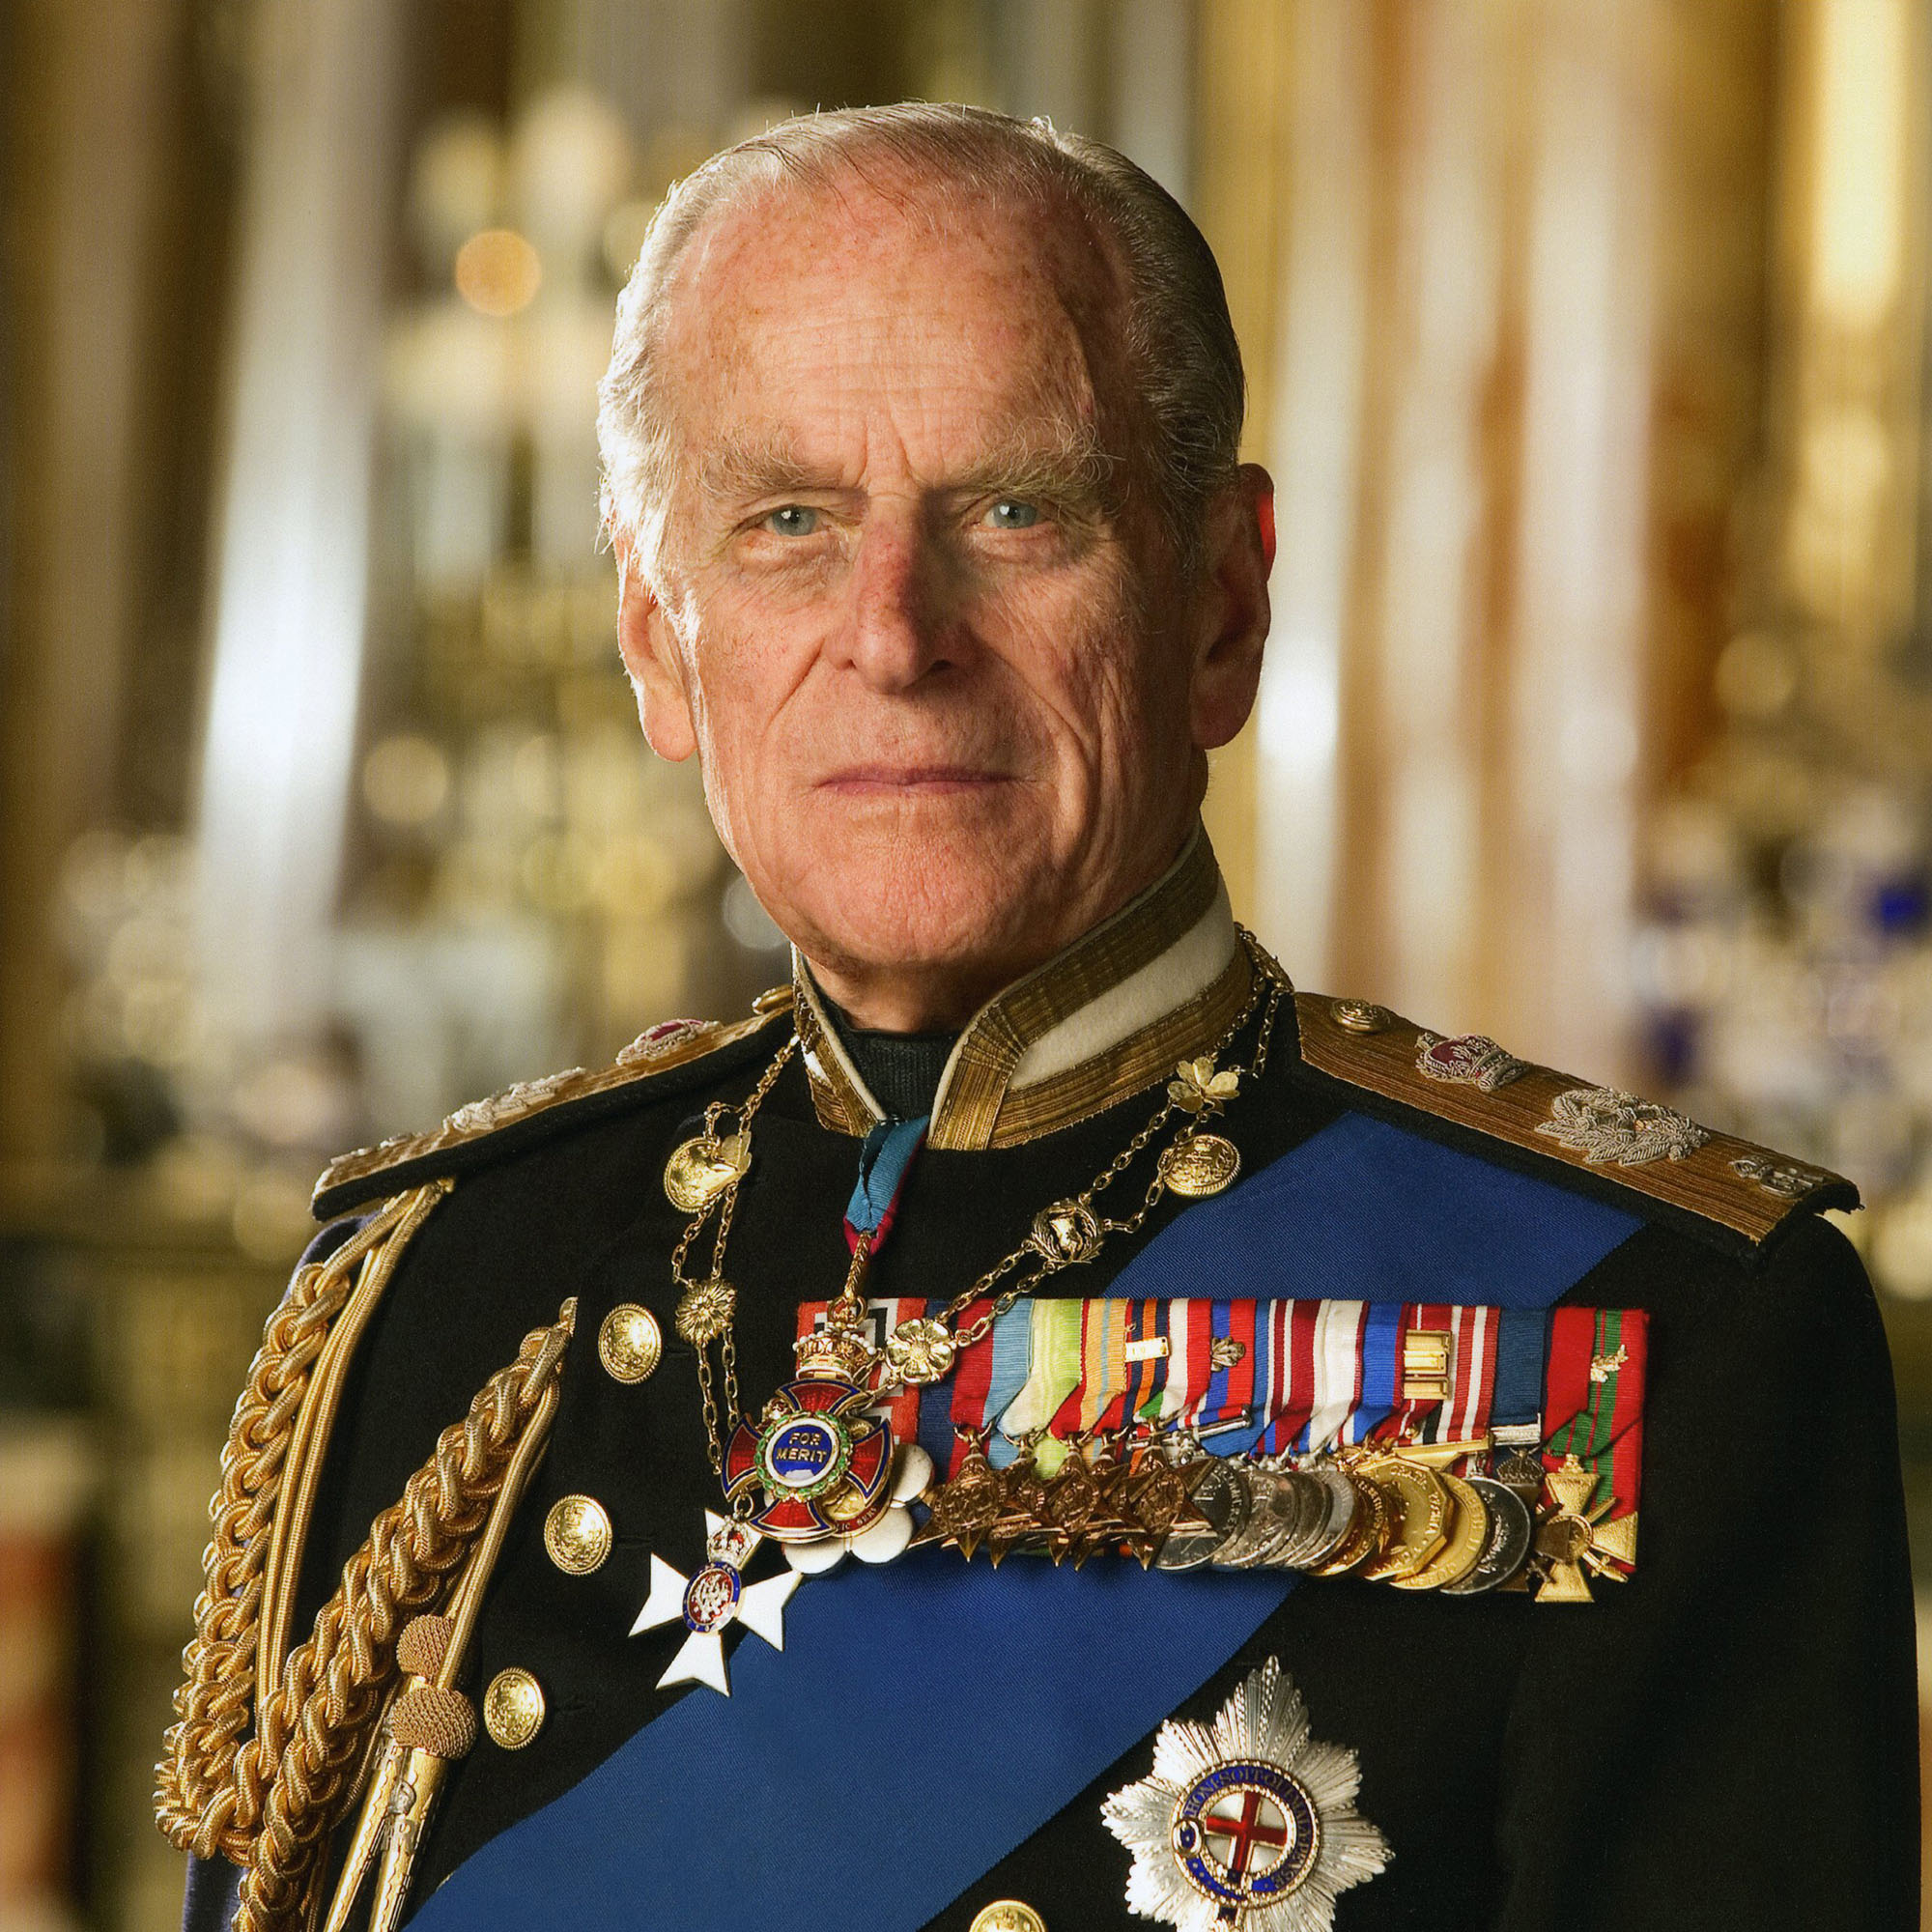 Saddened to hear the news of the death of His Royal Highness The Prince Philip, Duke of Edinburgh, and our thoughts are with the Royal Family